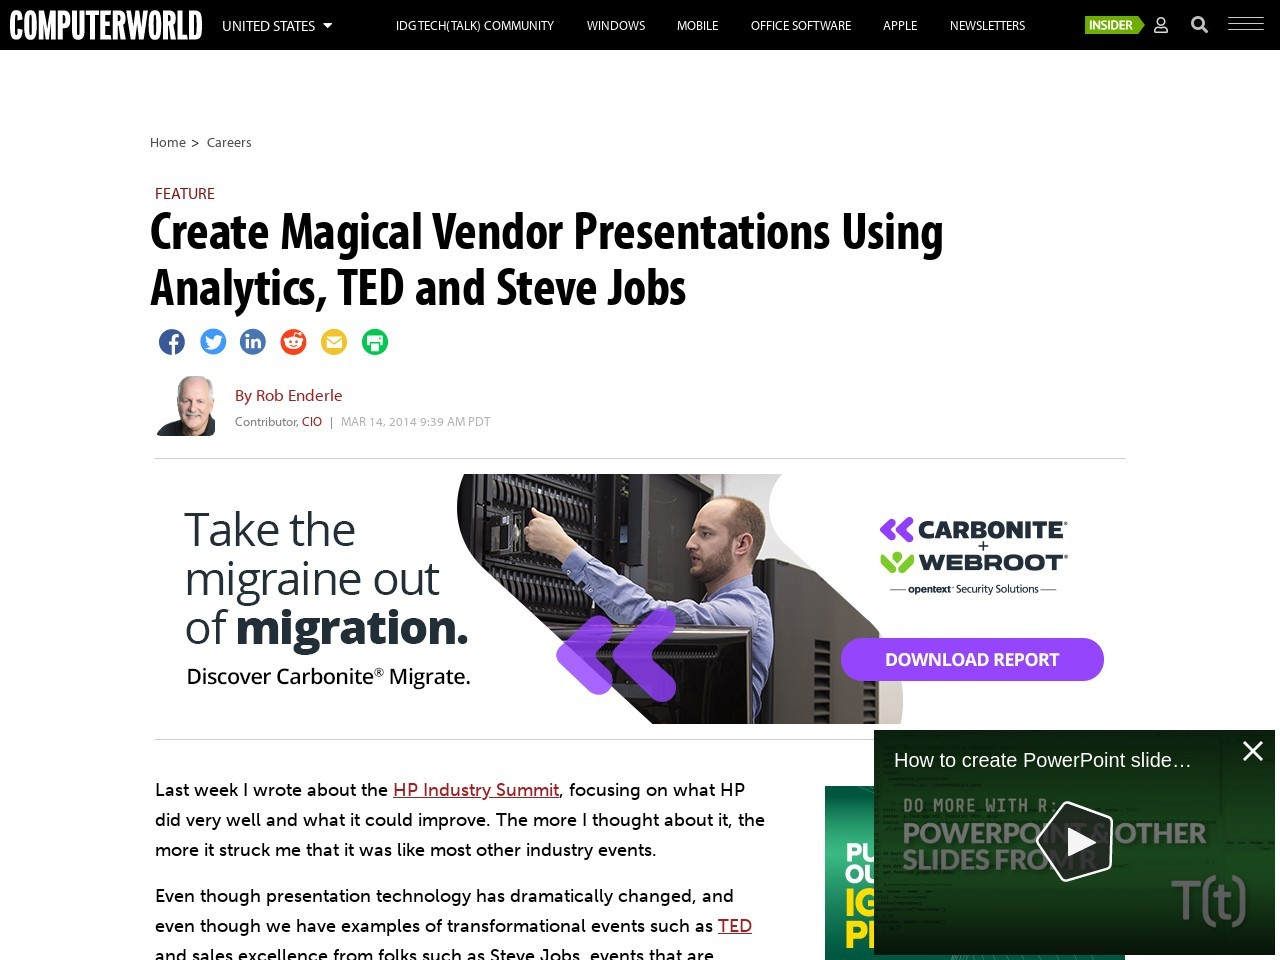 Create Magical Vendor Presentations Using Analytics, TED and Steve Jobs